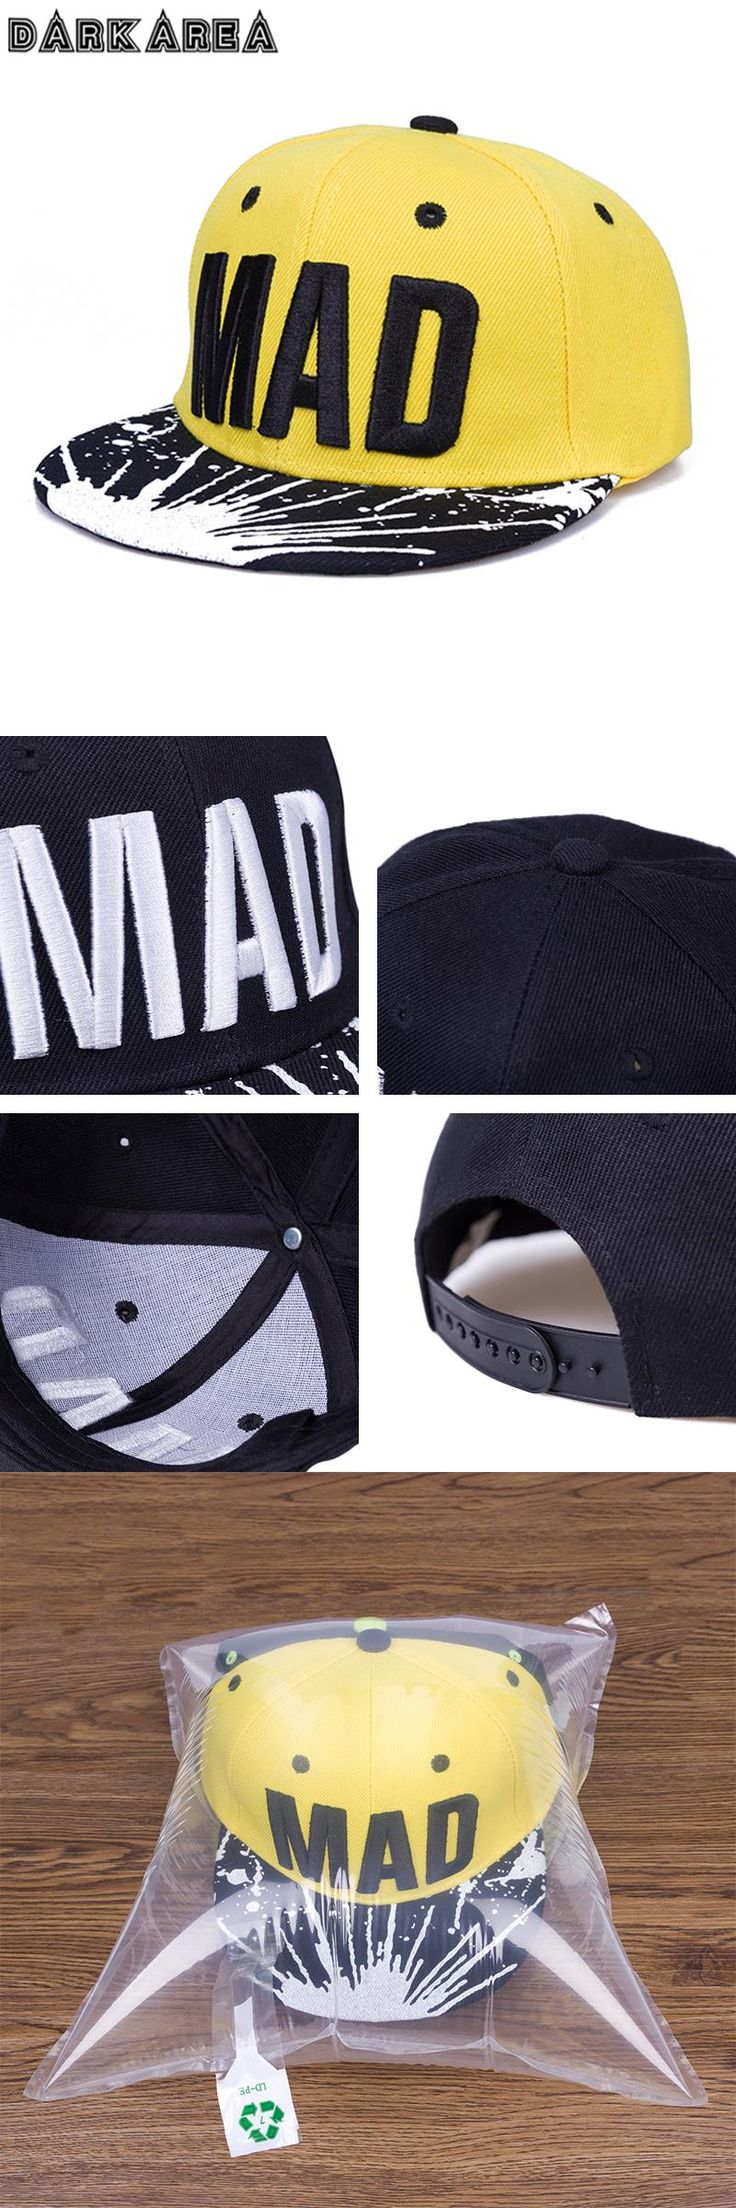 [Visit to Buy] Embroidery Baby Snapback Caps Letter Patterns Unisex Children Hat Kid Baseball Caps Hip Hop Cap For Boys/Girls Summer Hats #Advertisement